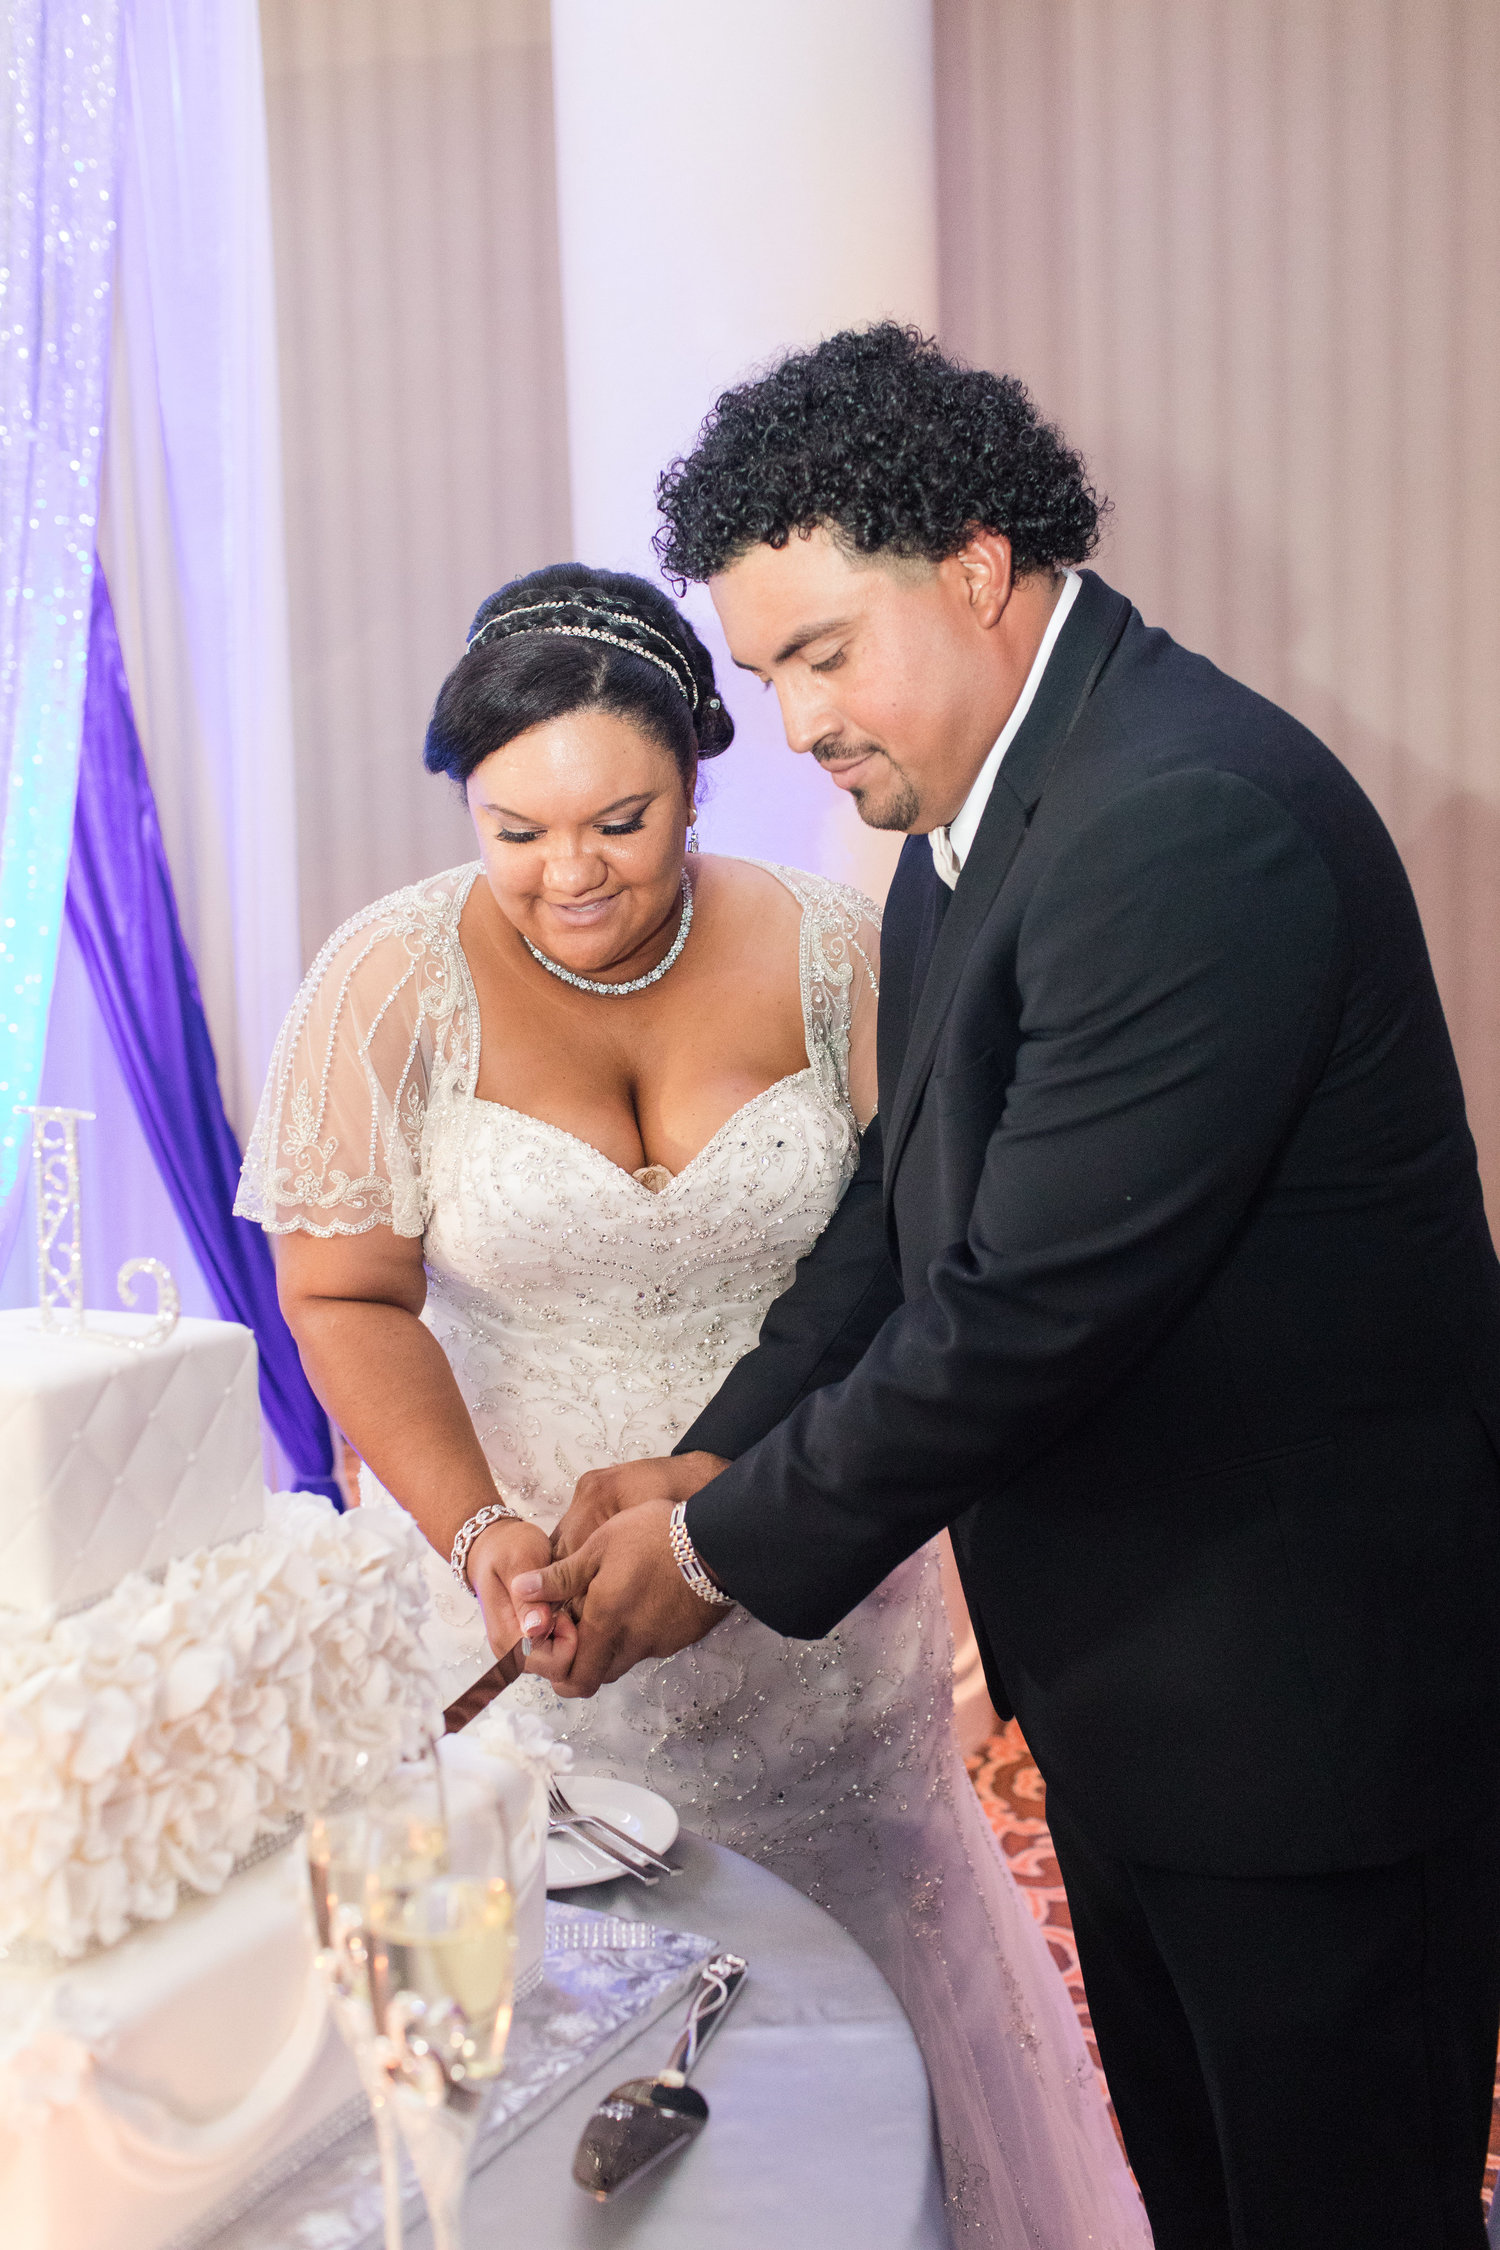 bride and groom cutting cake at vintage DIY wedding in Tysons Corner Photography by Marirosa